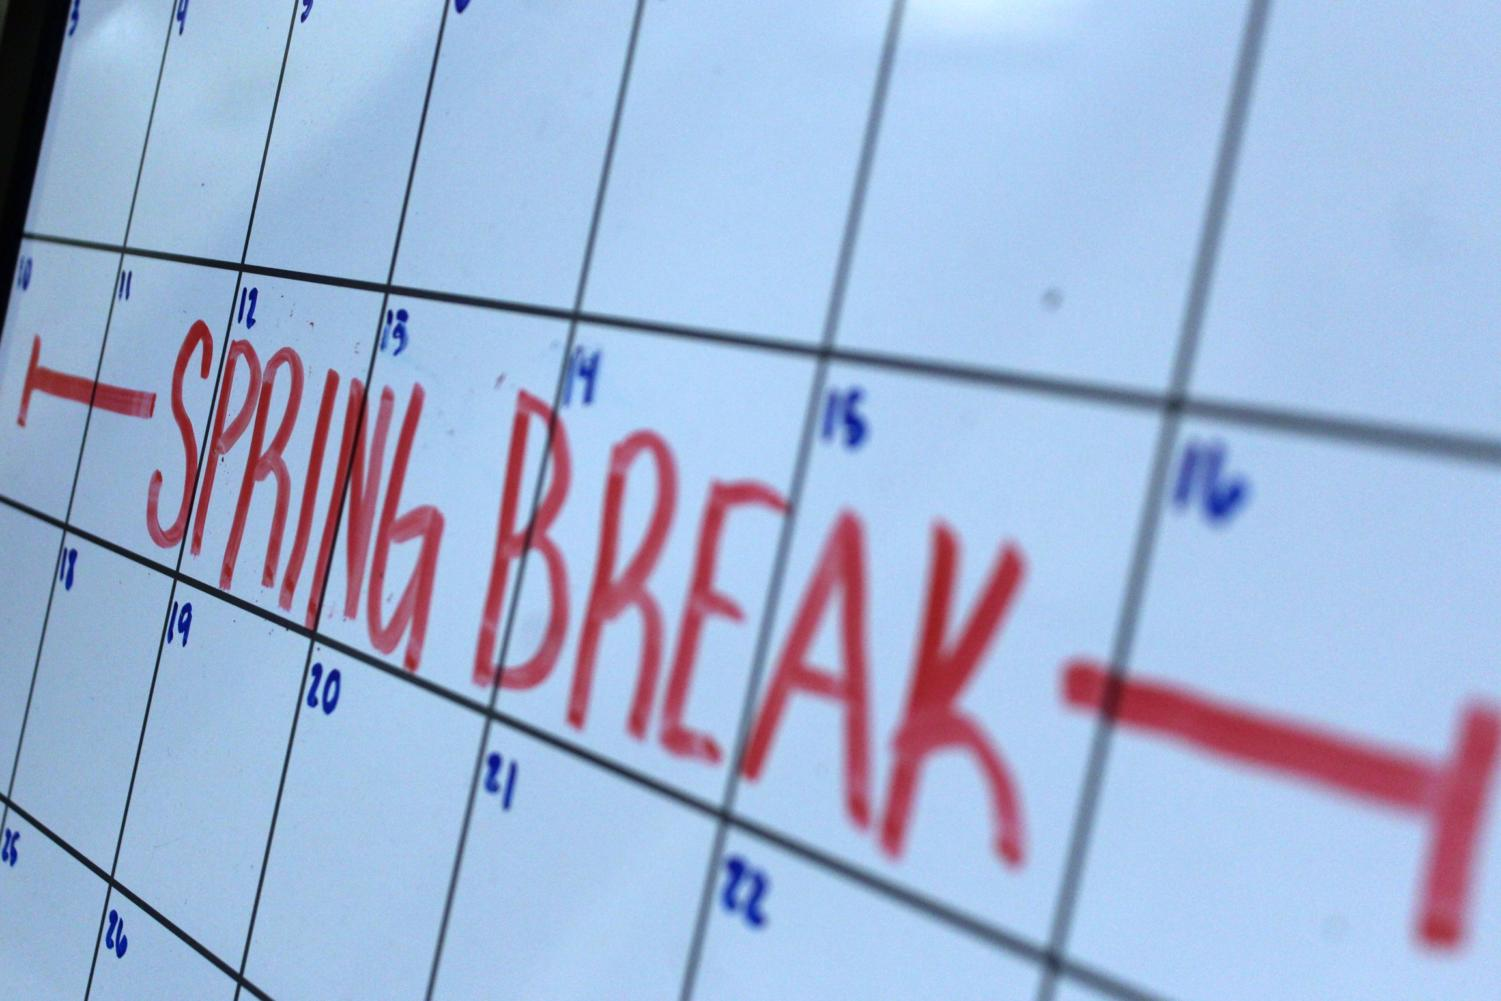 School will be off for Spring Break from March 11 to March 18. The first day back will be March 19, since students recieved March 18 off for reaching the car raffle goal.